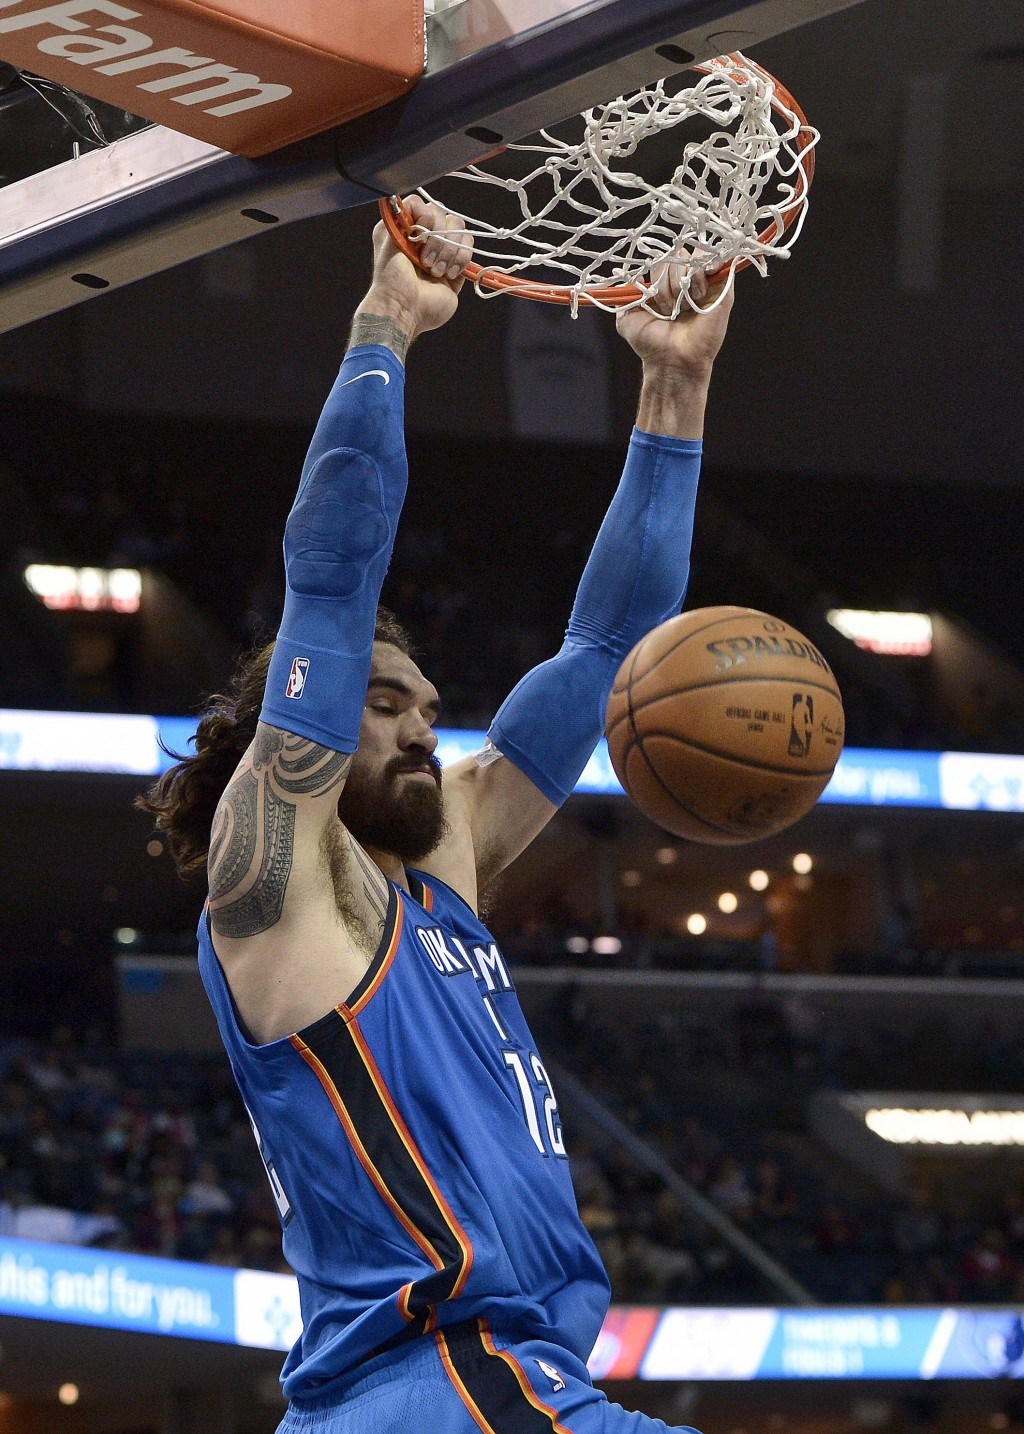 Oklahoma City Thunder center Steven Adams (12) dunks the ball in the first half of an NBA basketball game against the Memphis Grizzlies Wednesday, Feb